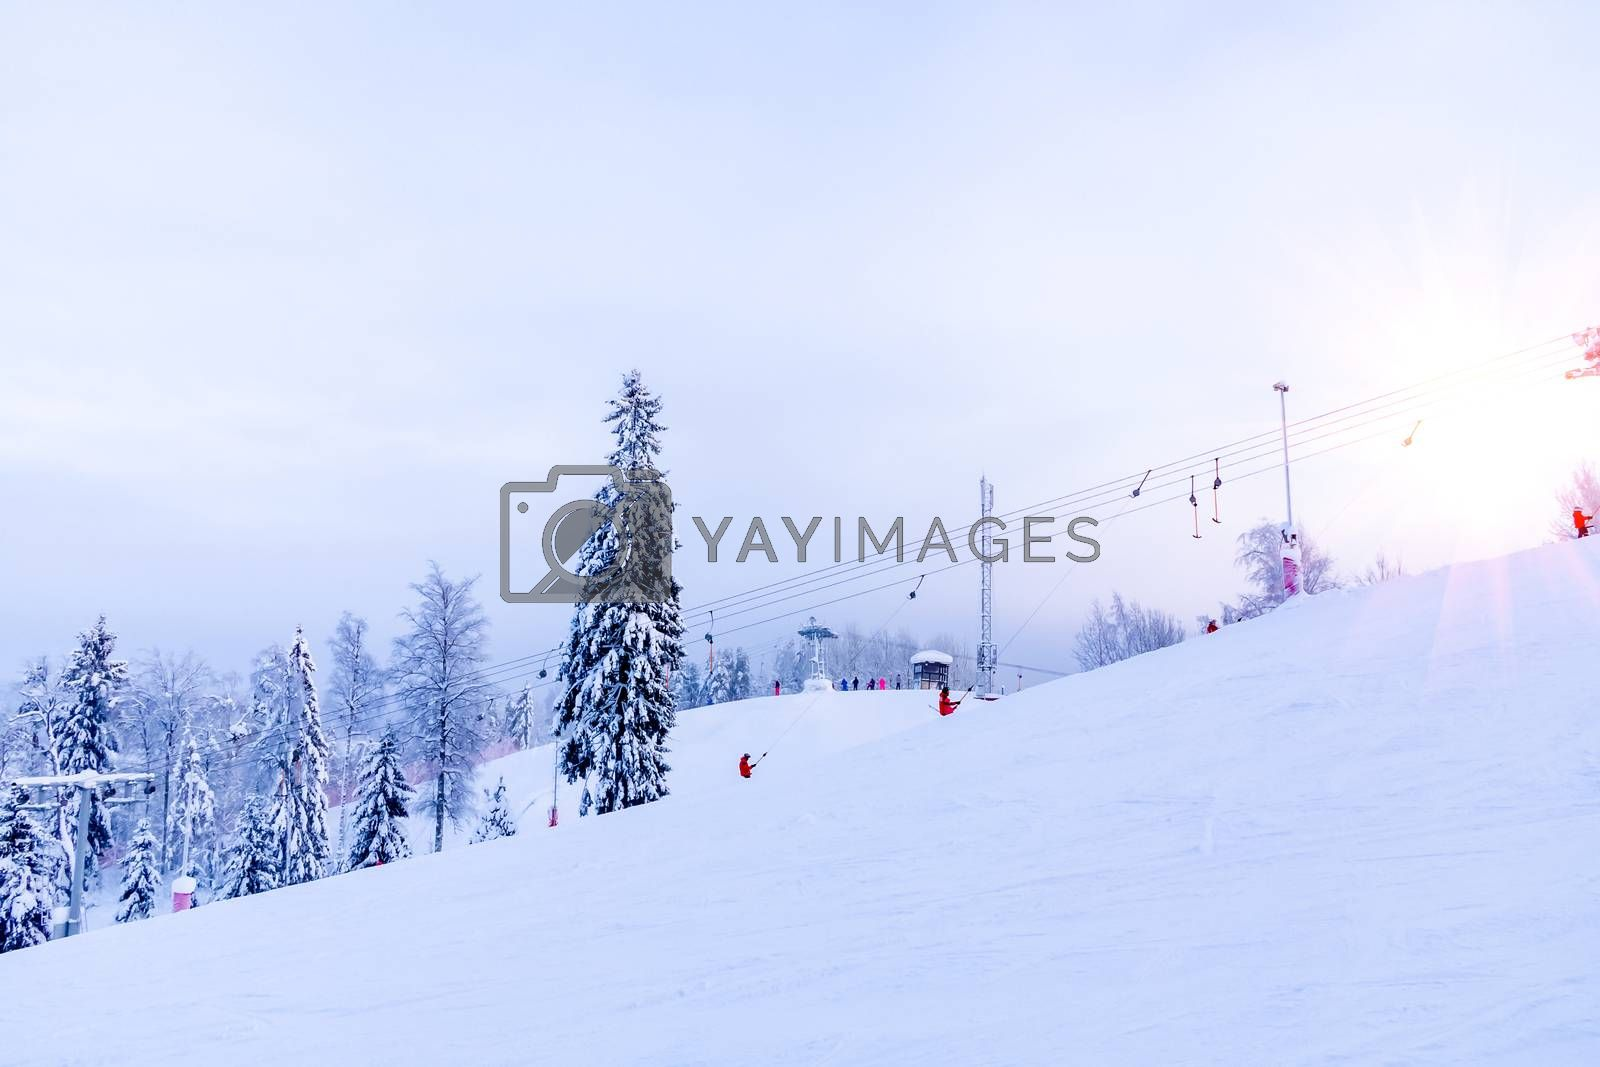 Snow-covered ski slope in the mountains with a lift and skiers skating away by galsand